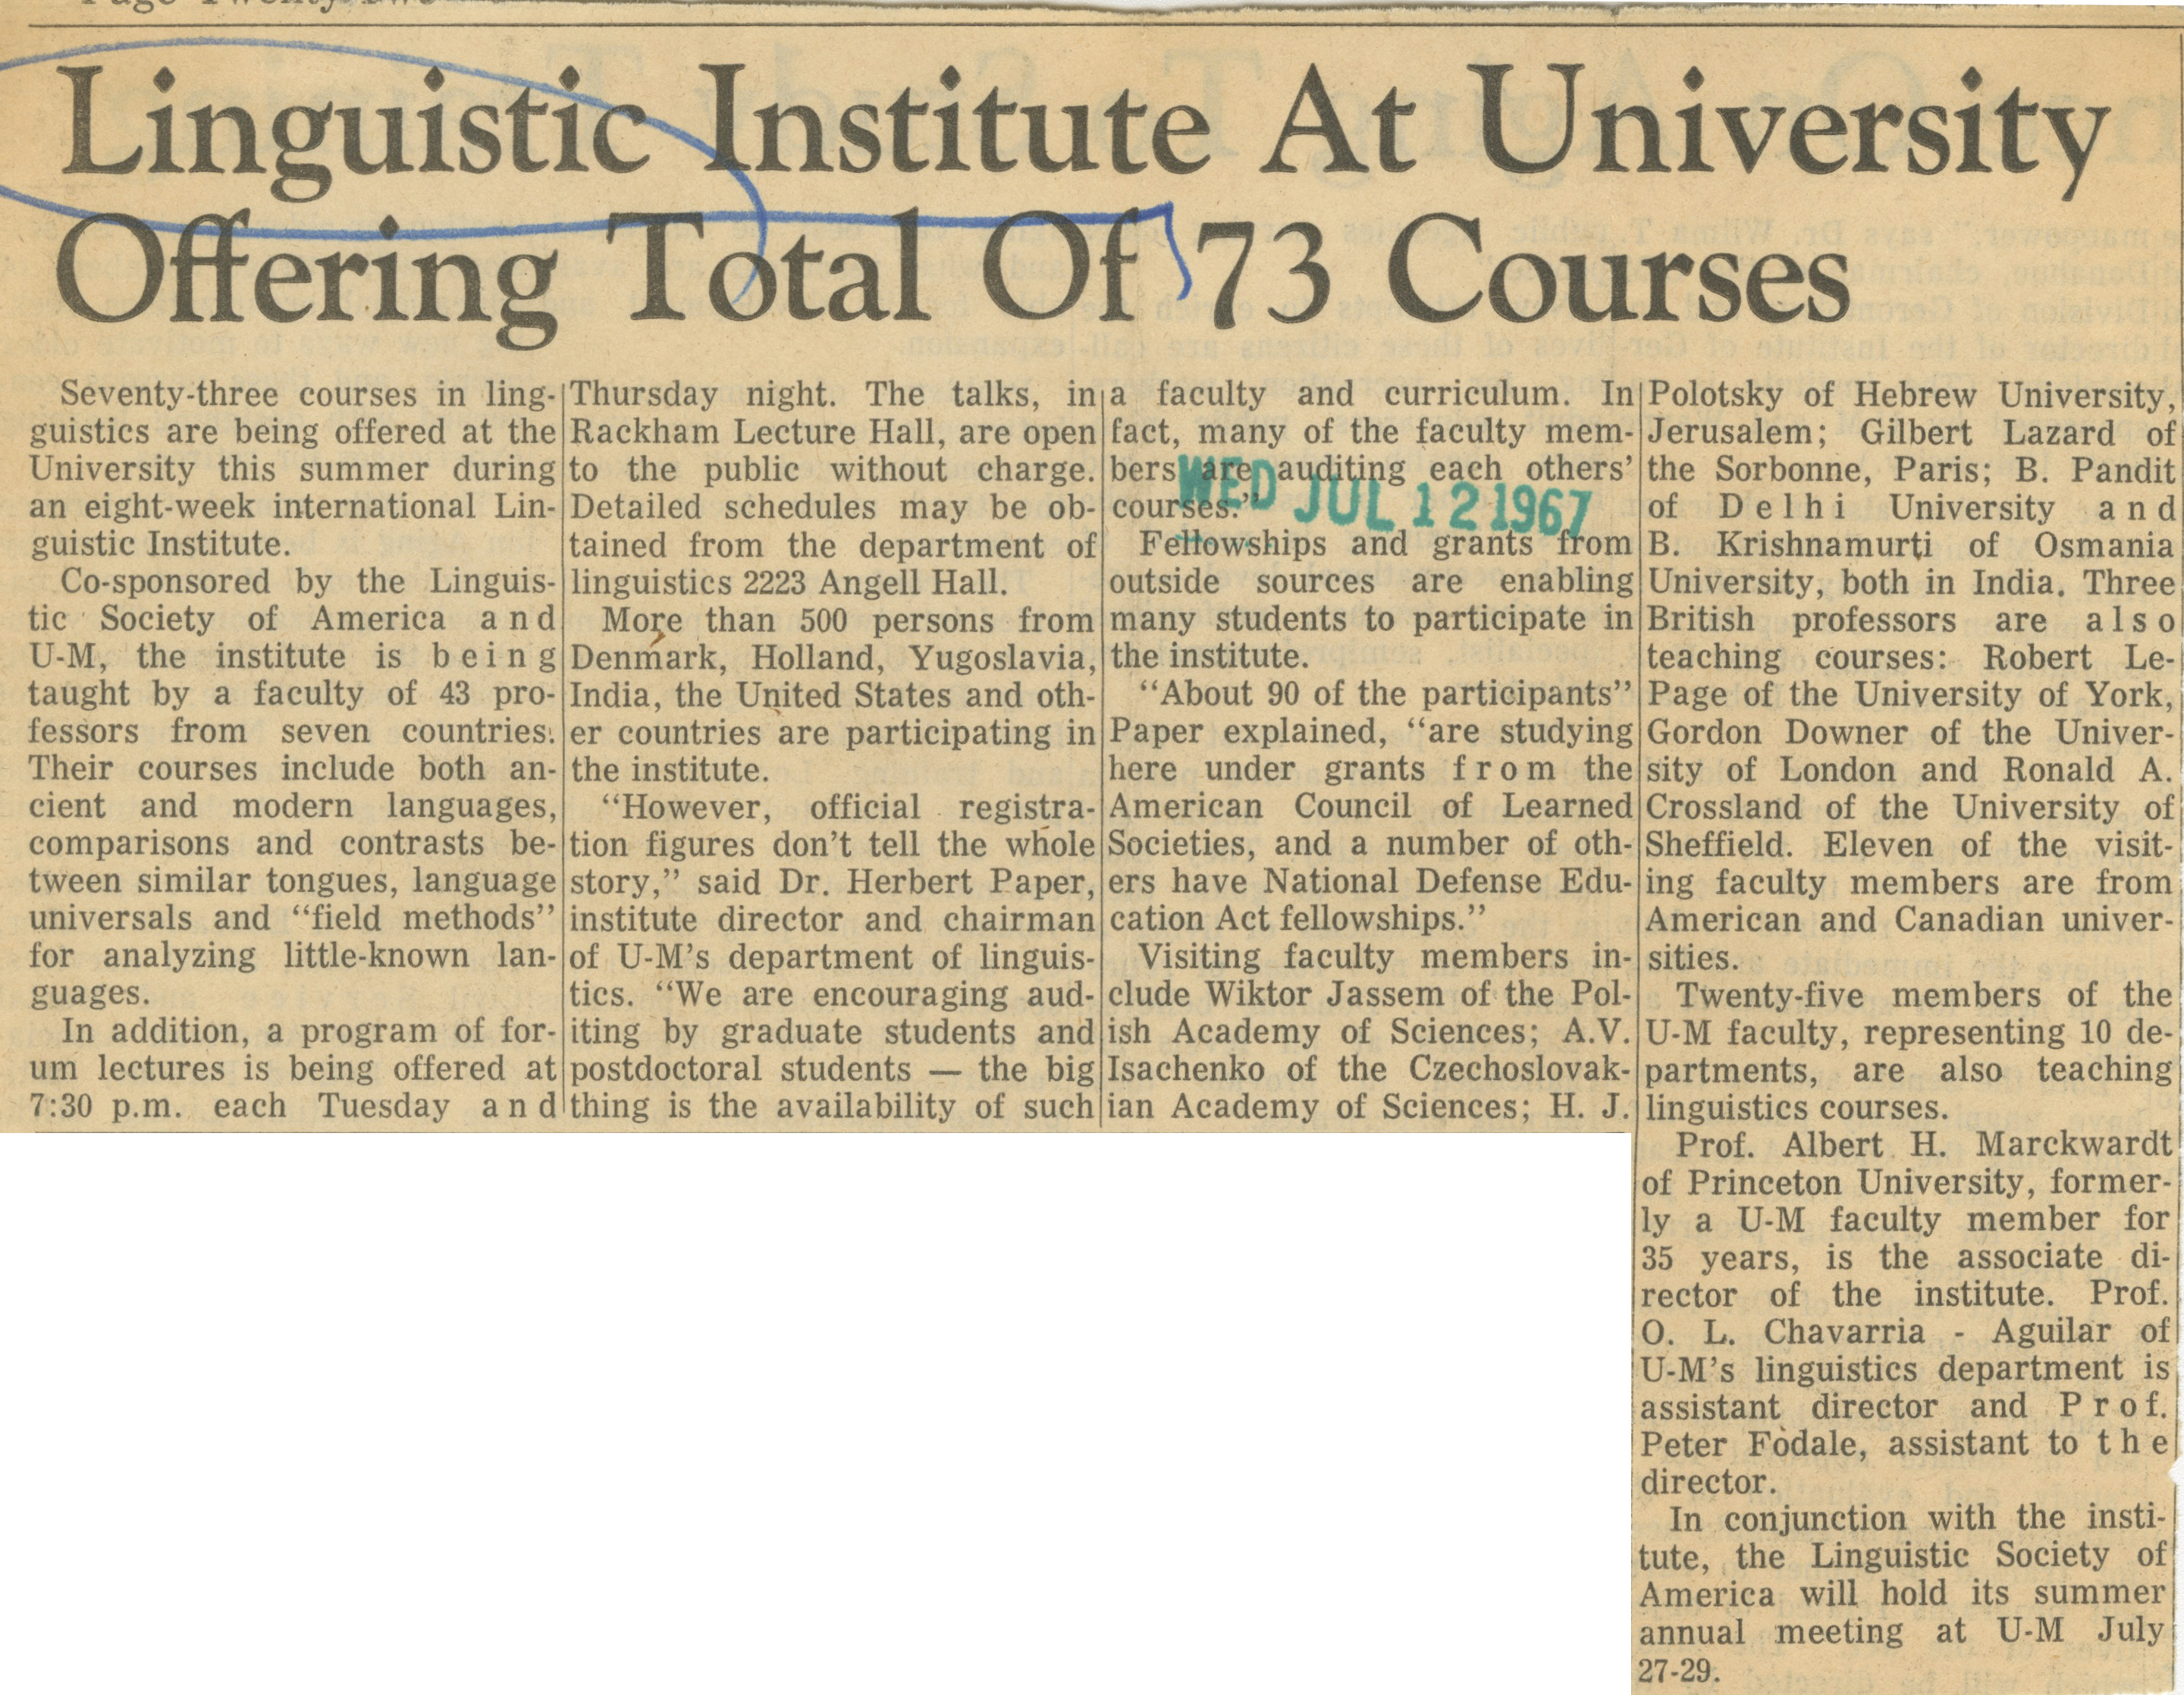 Linguistic Institute At University Offering Total Of 73 Courses image